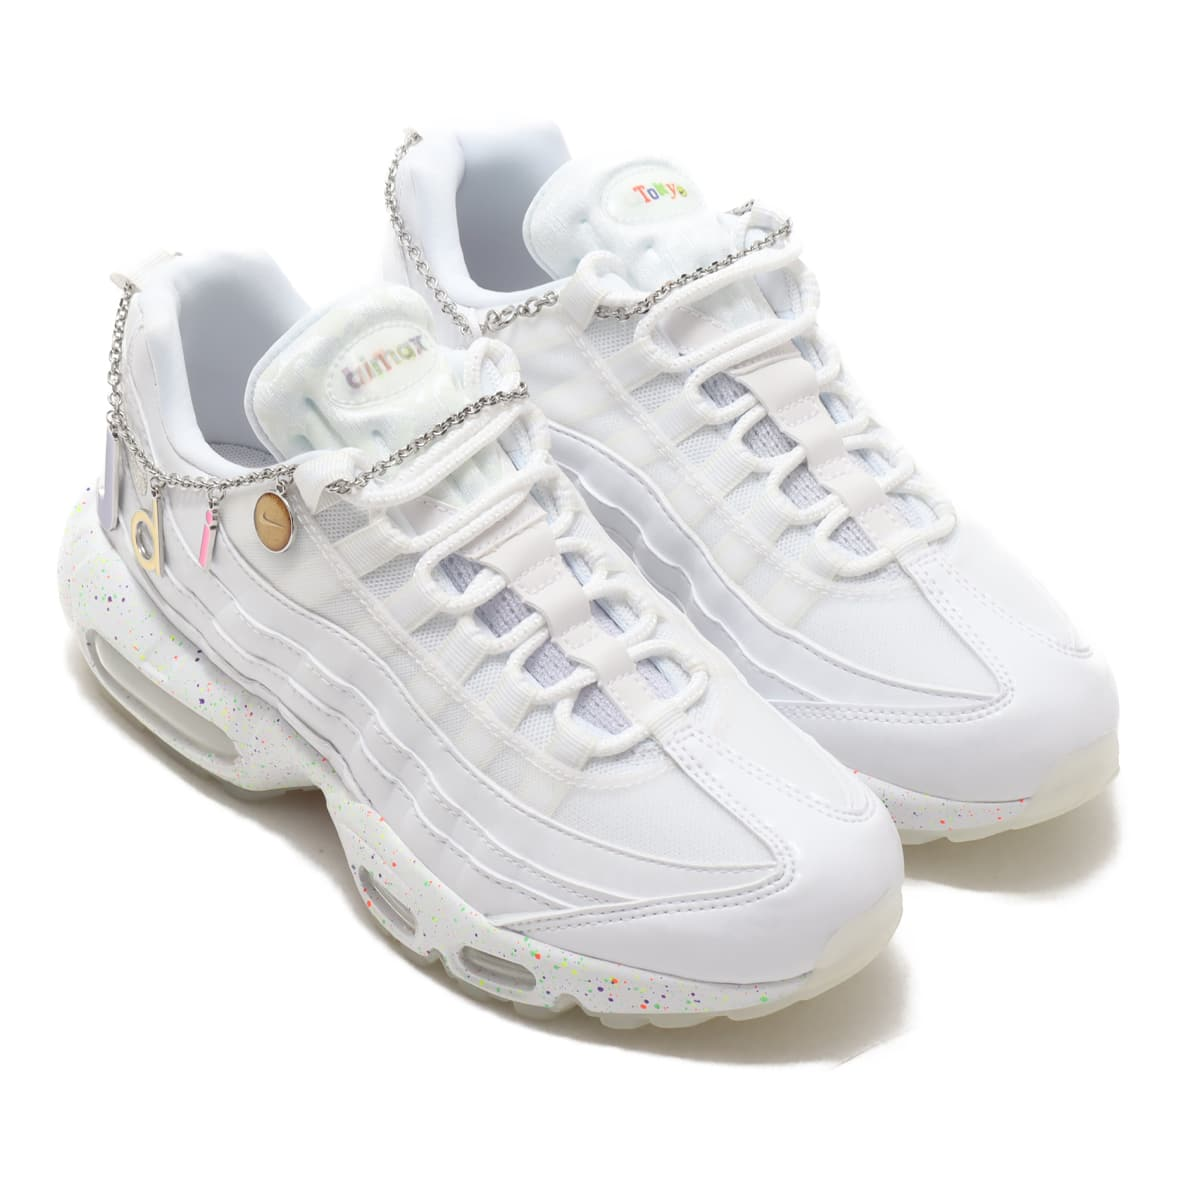 NIKE WMNS AIR MAX 95 WHITE/METALLIC SILVER-POISON GREEN 20FA-I_photo_large